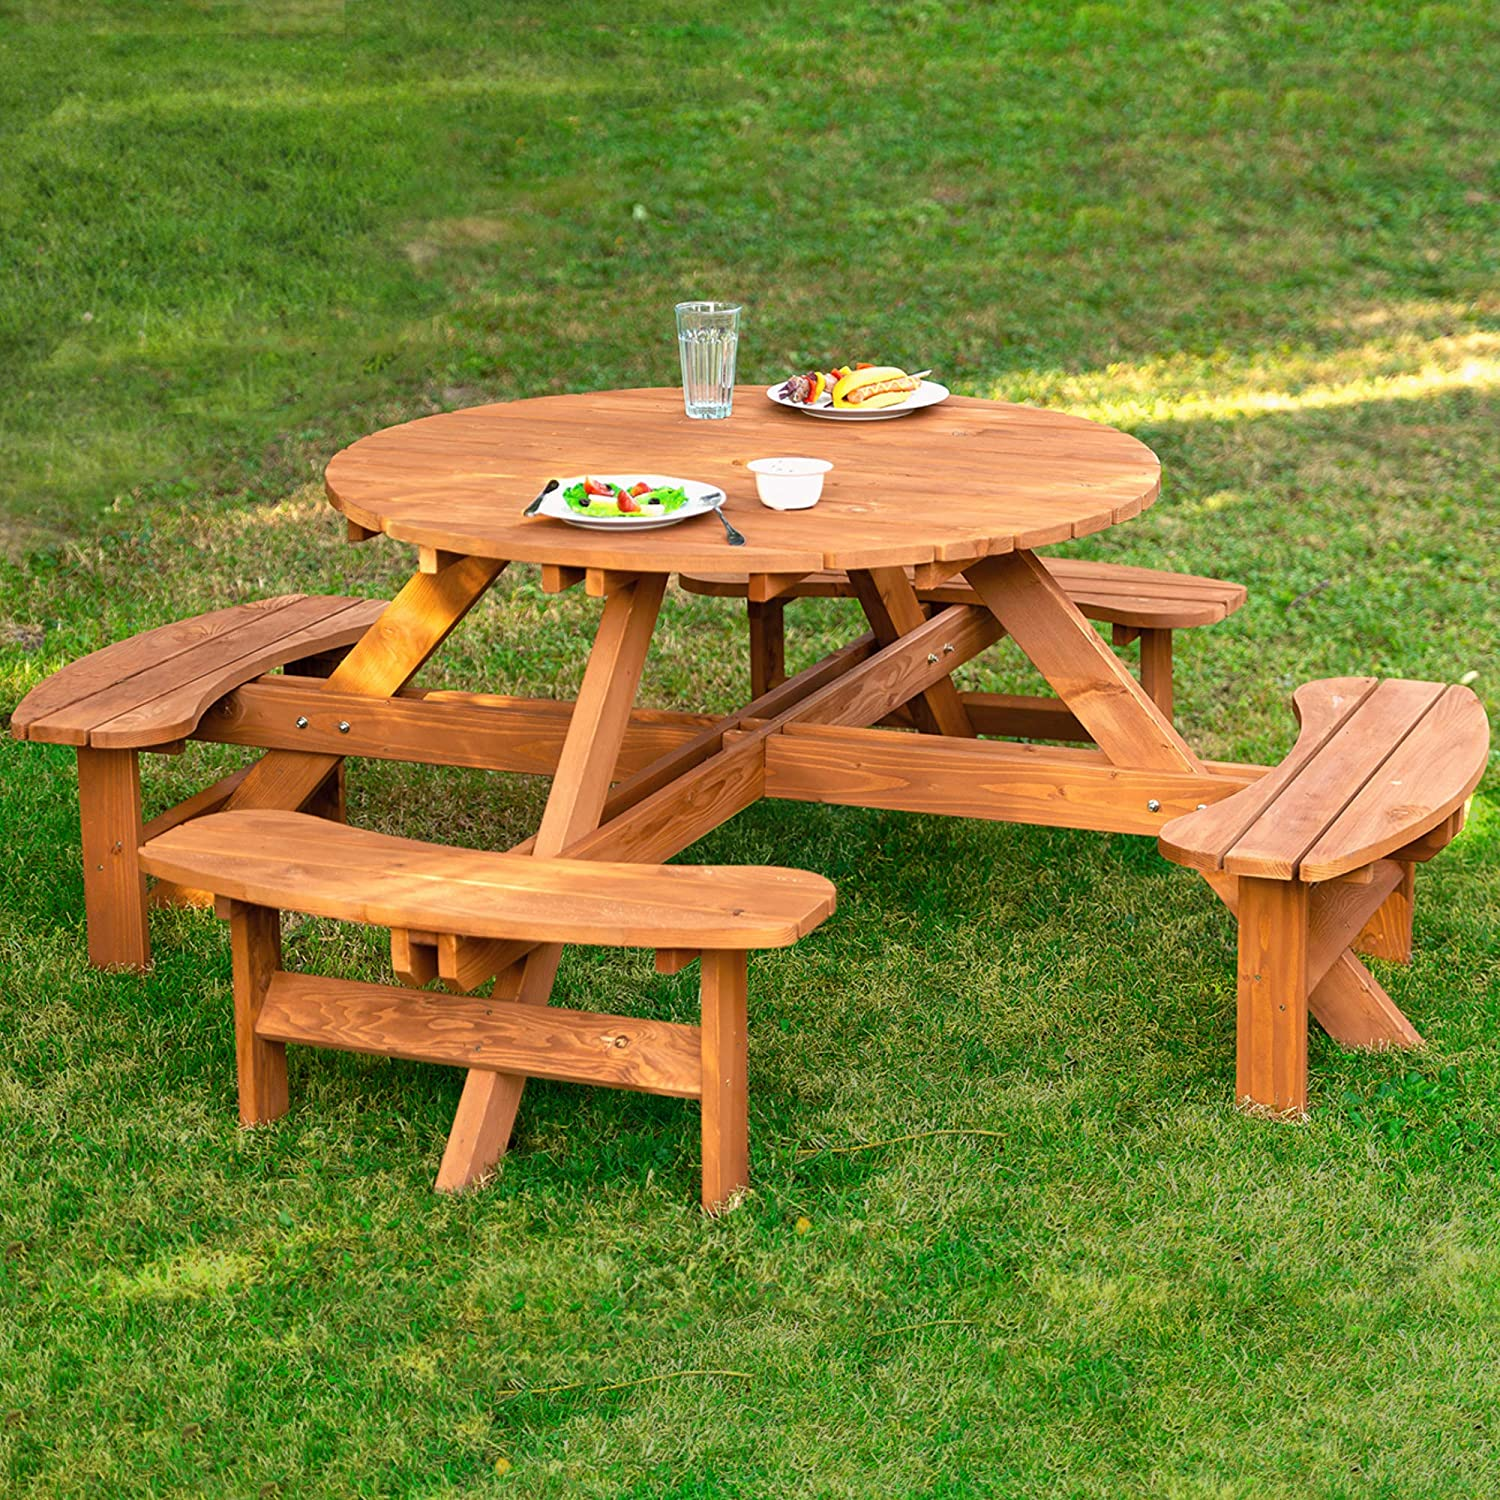 Amazon.com: Leisure Season RPT8230 Round Picnic Table - Brown - 1 Piece - Best Portable Wooden Outdoor Seating And Dining Furniture - Rustic Garden, Lawn, Deck Or Patio Set With Umbrella Hole -